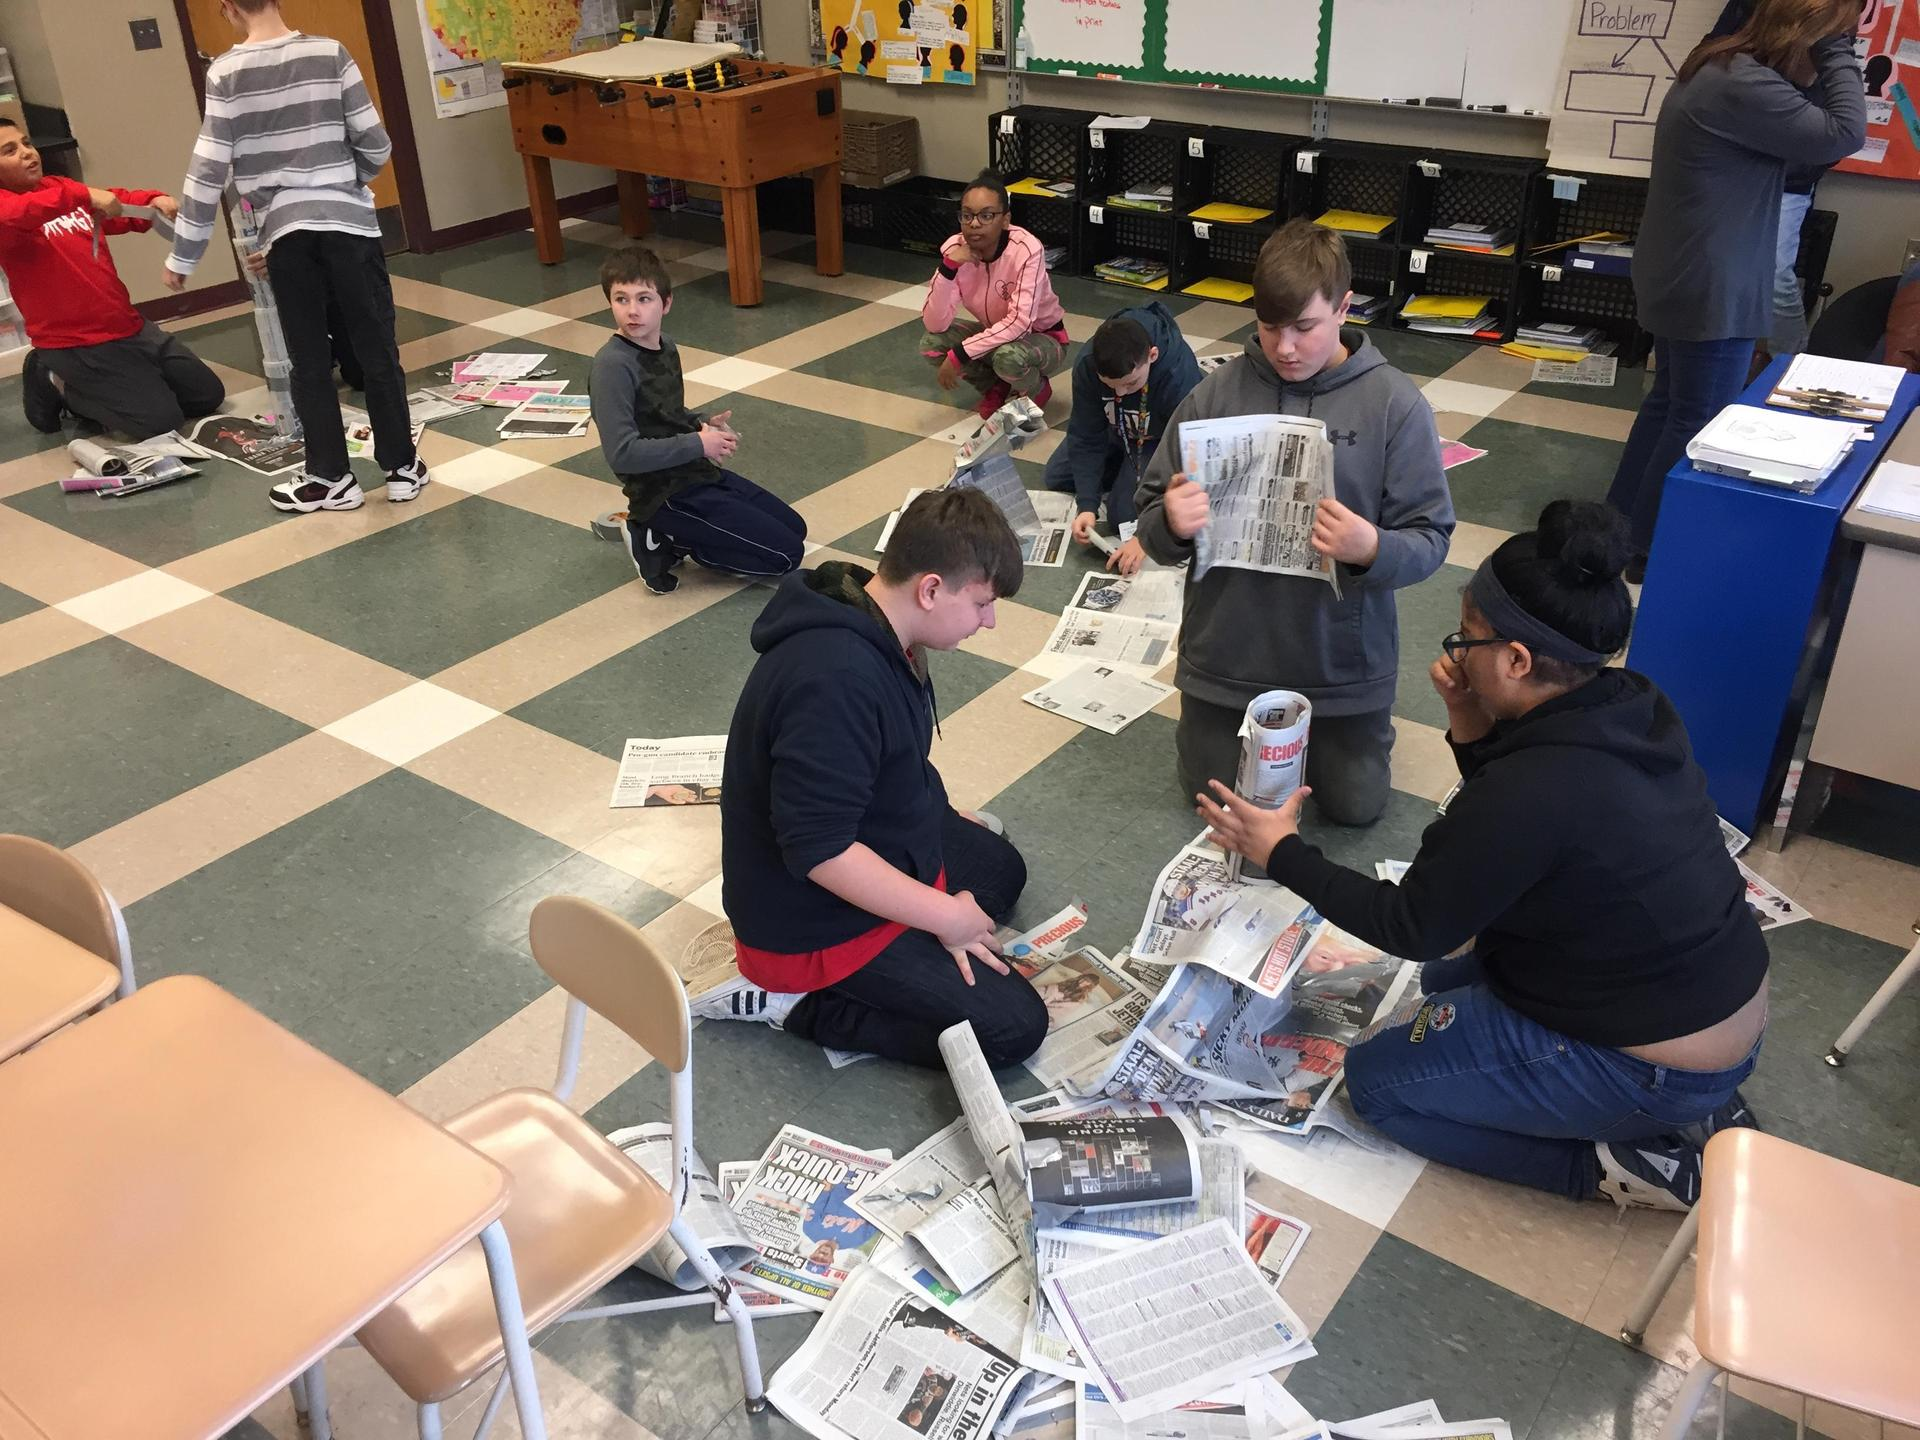 Students building newspaper towers in a competitive exercise.